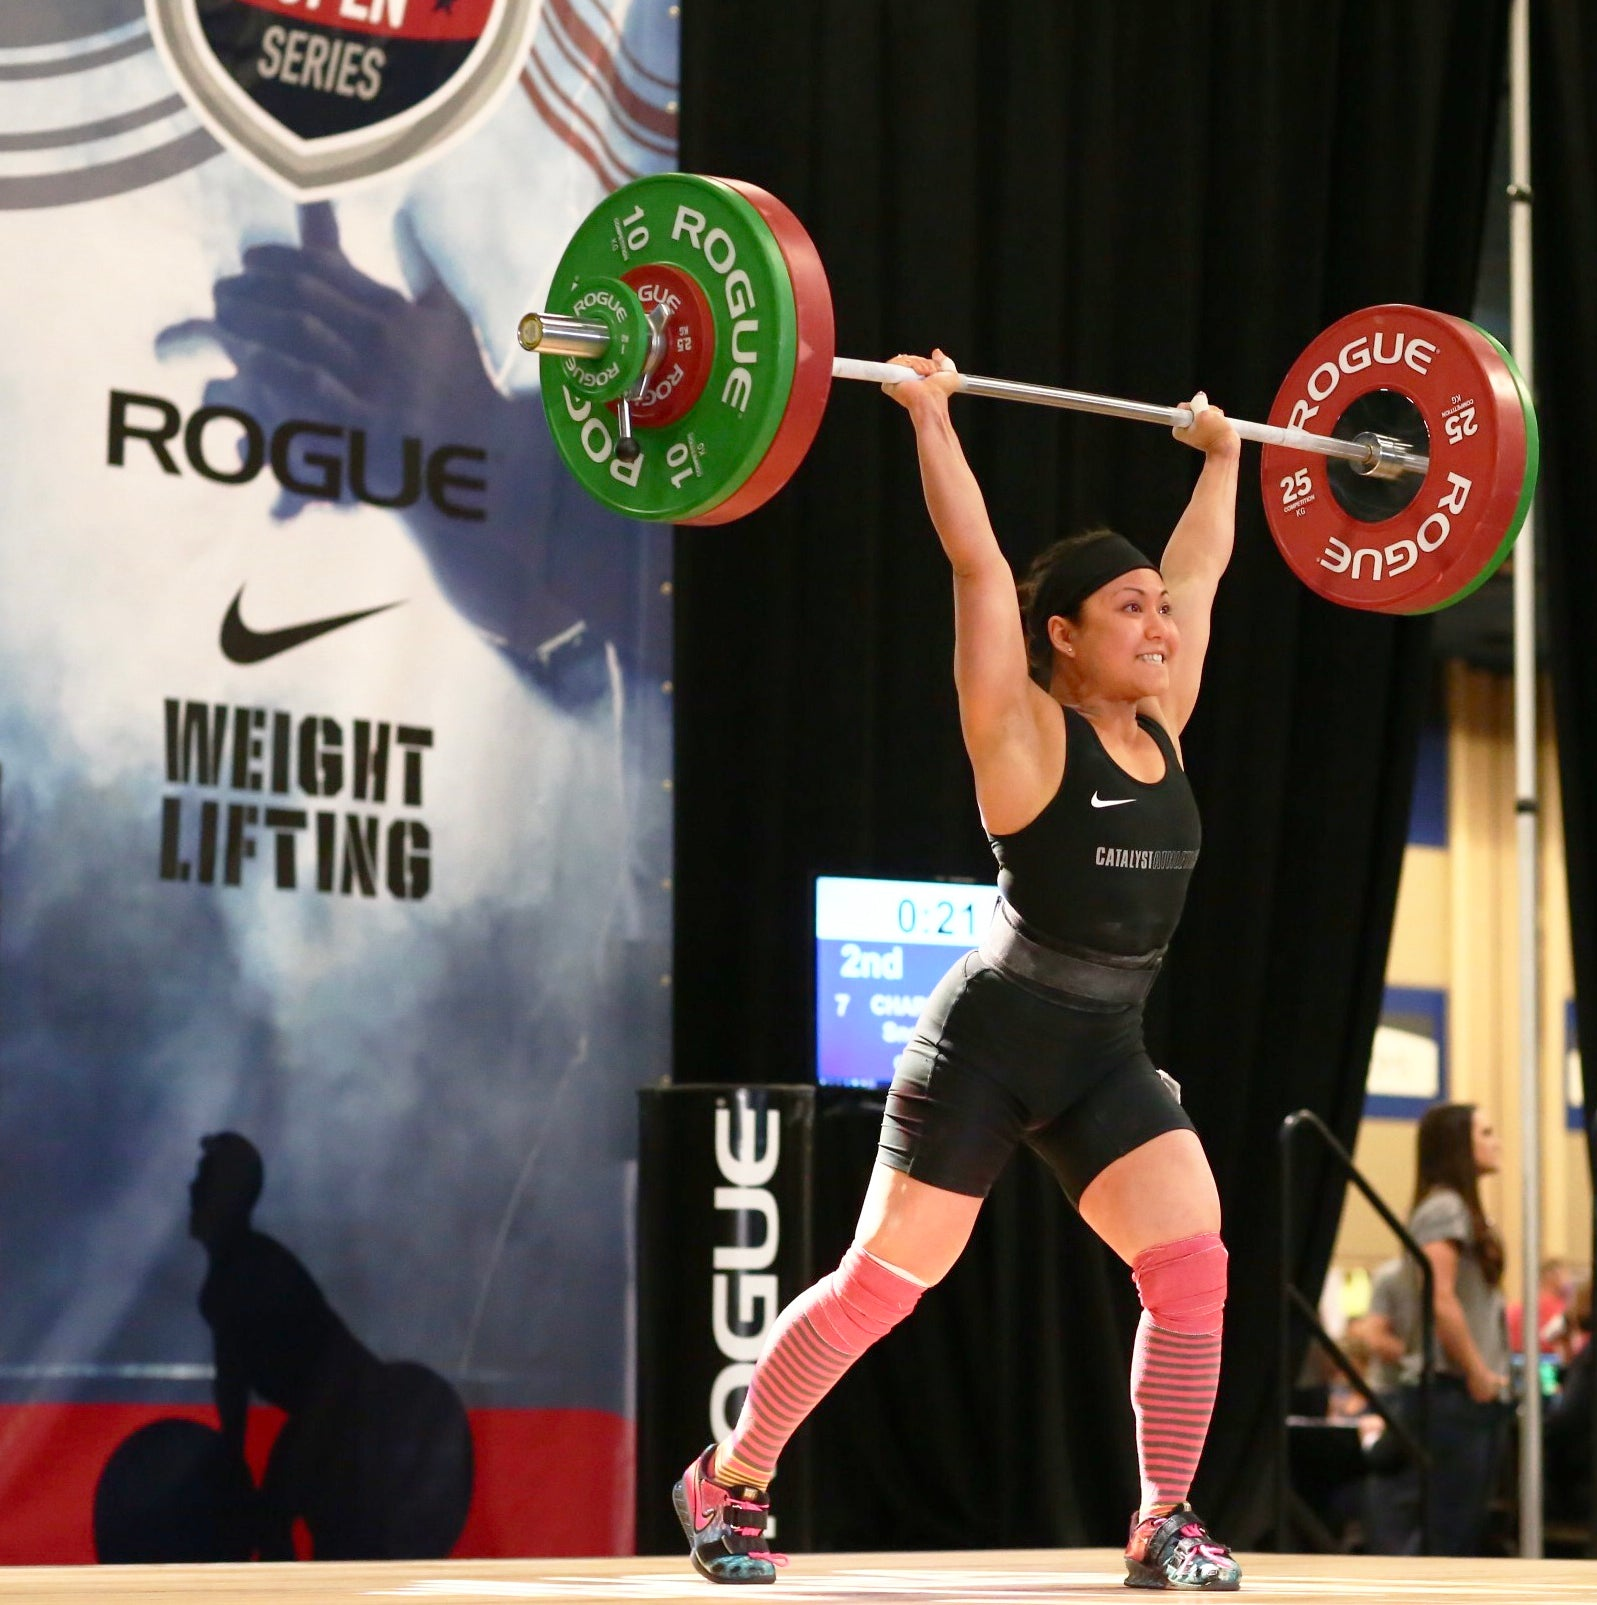 Snow Powers Charpentier of Art of Barbell with a 97kg Clean and Jerk at American Open Series 3